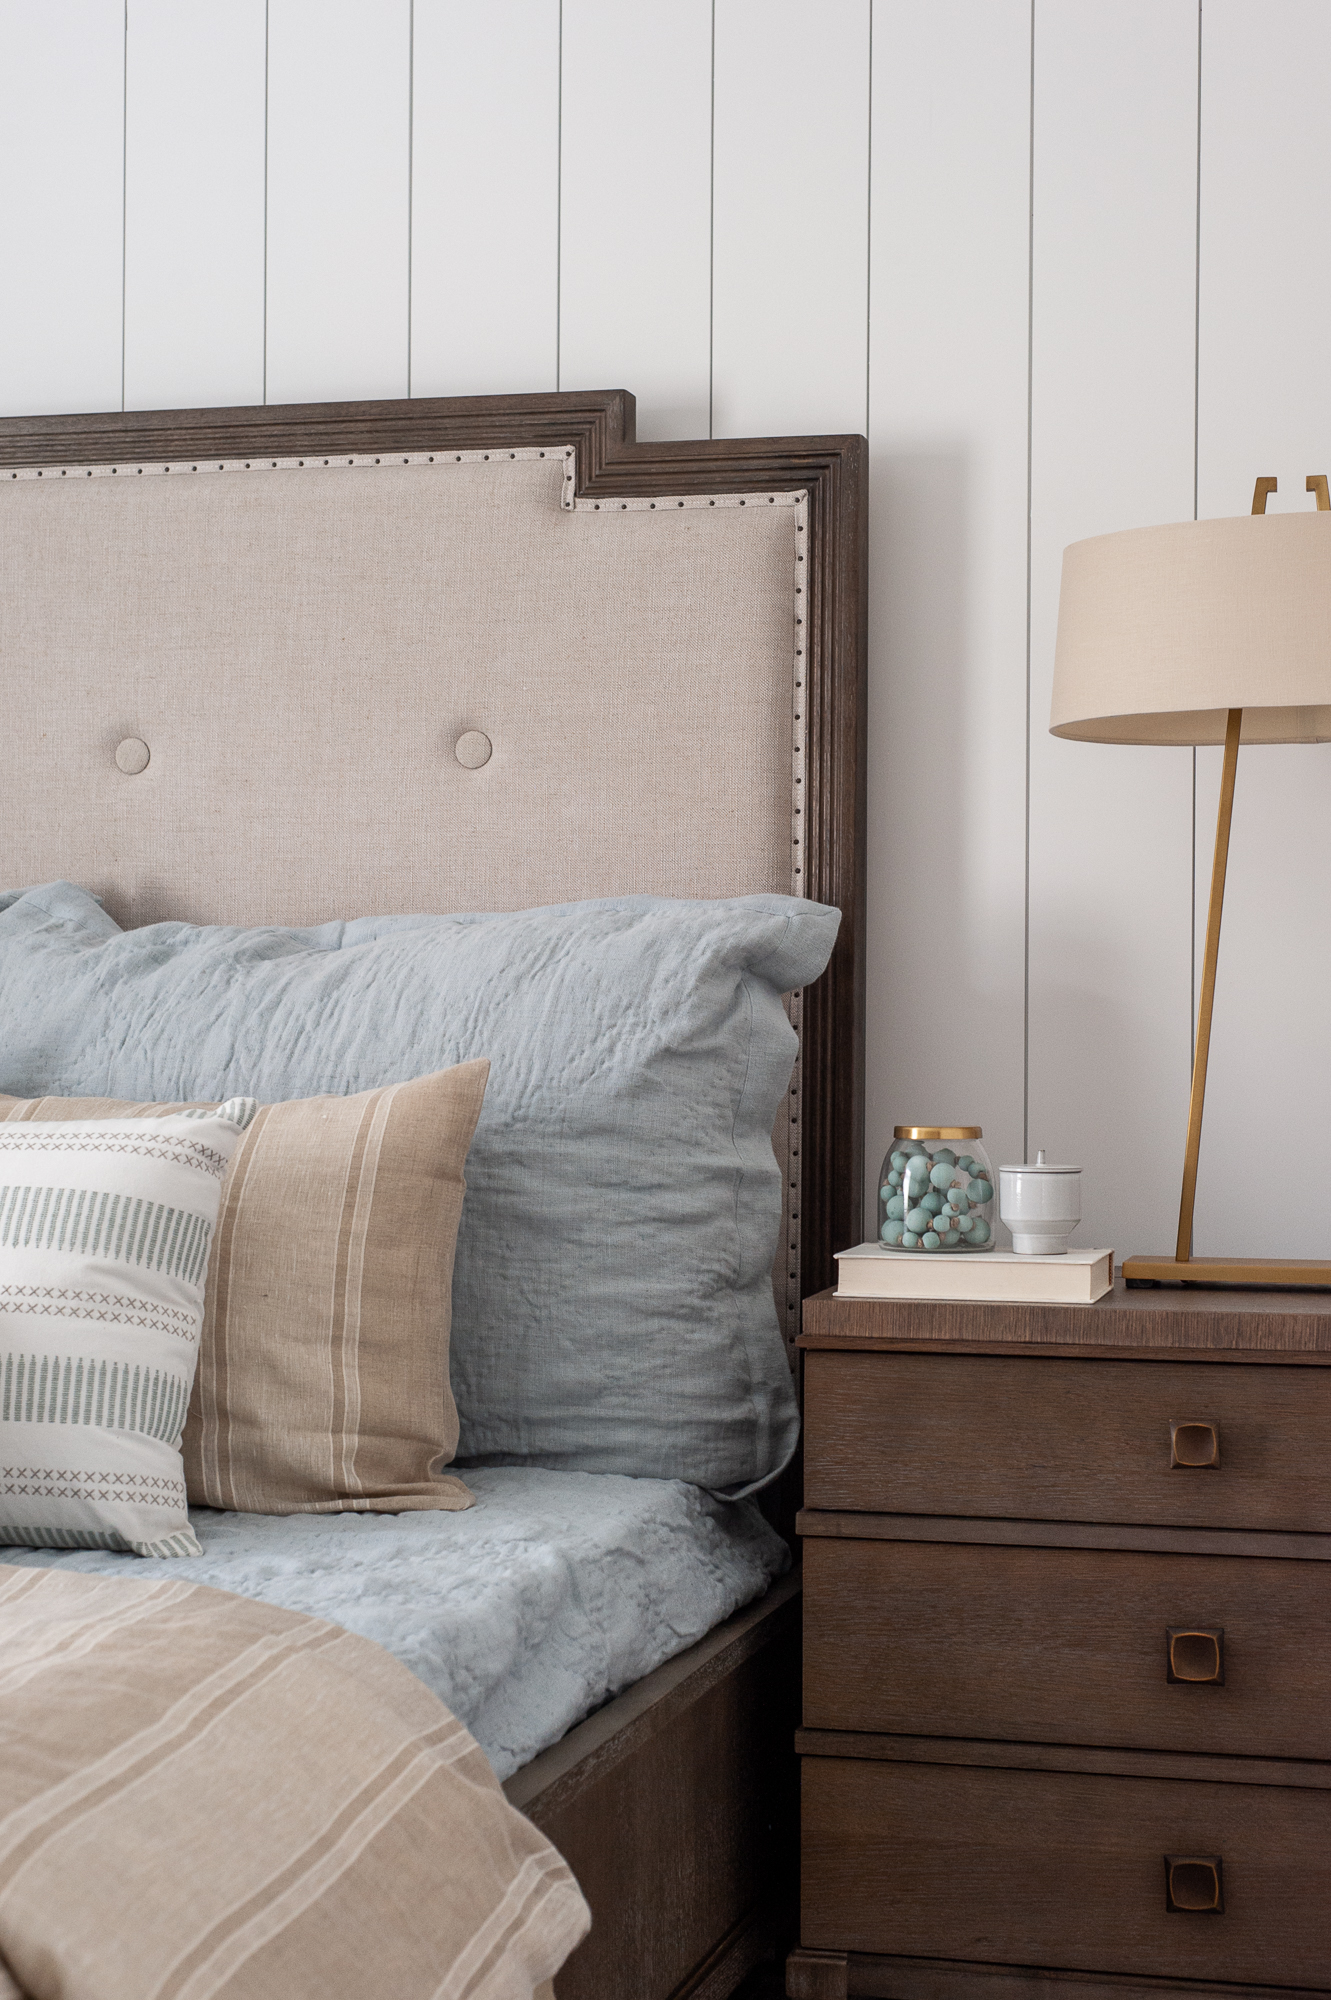 Micamy Design Studio_Model Home_Interior Design_Orchard Cove_Modern Coastal_Universal_Uttermost_Vertical Shiplap_Amity Home_Dutch Euros_Wendover_Guest Suite_Gold.jpg